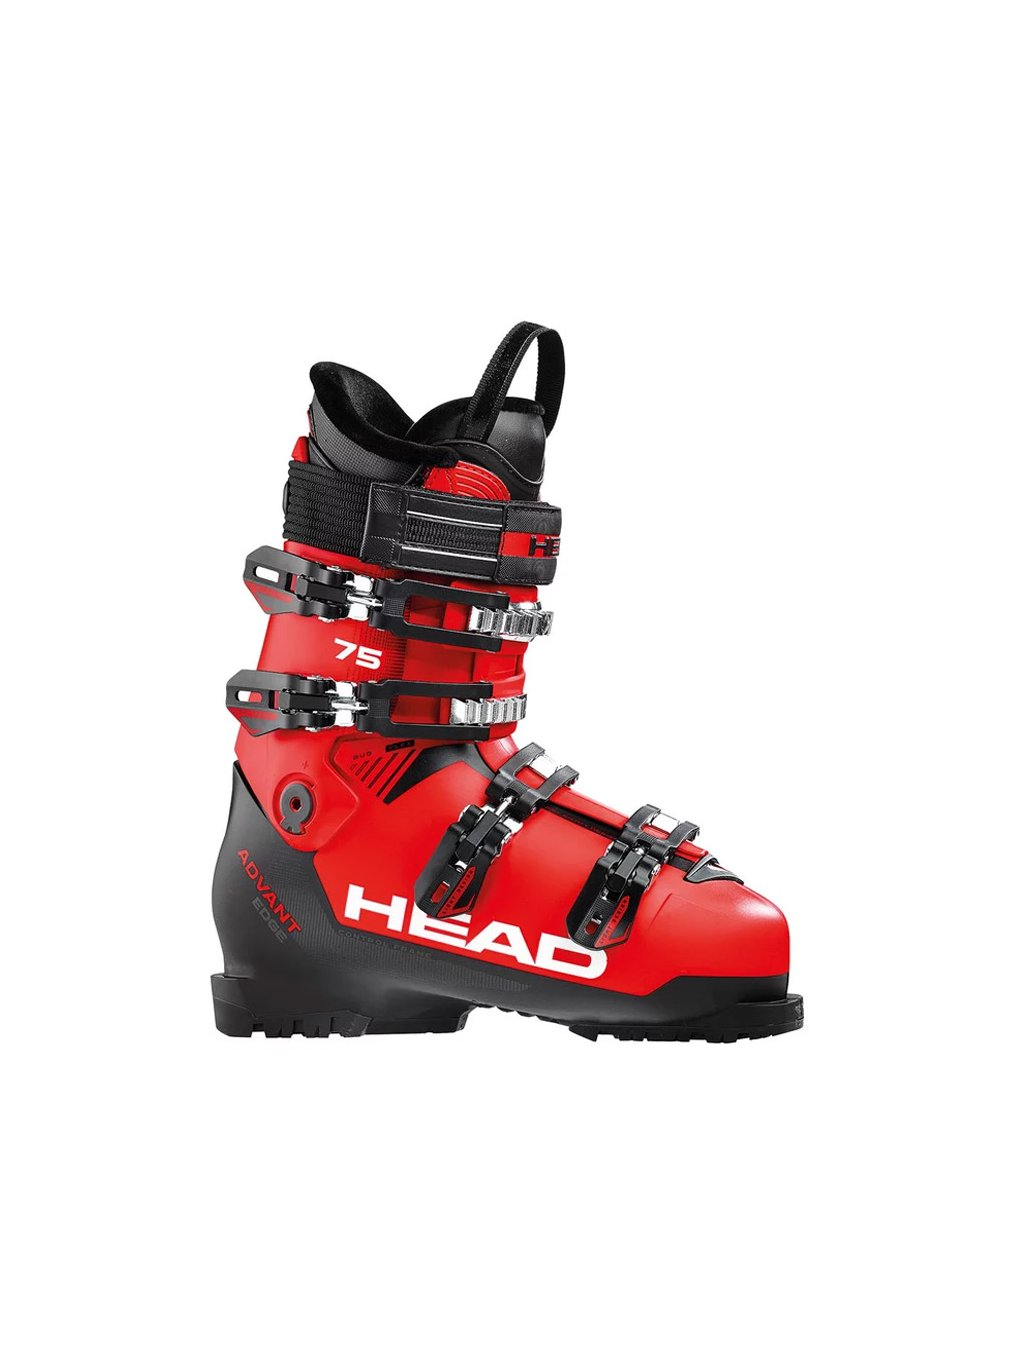 Head Advant Edge 75 - Red/Black